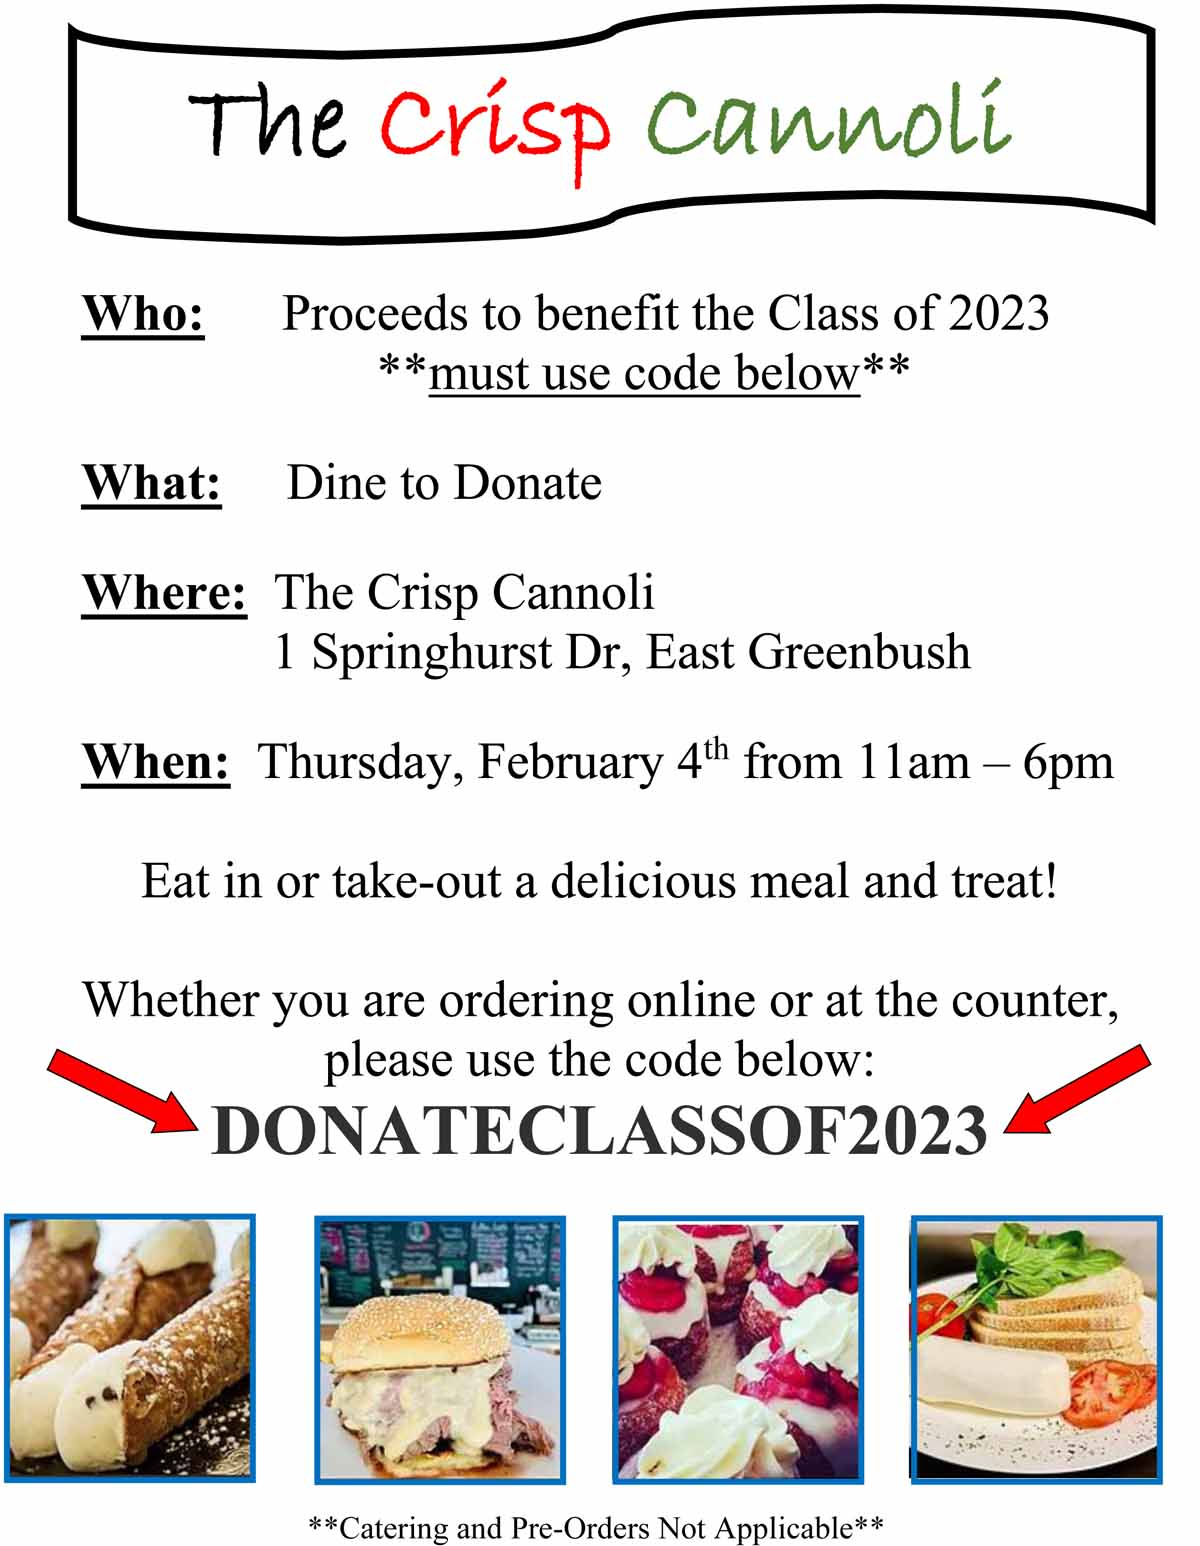 The Crisp Cannoli Fundraiser Flyer